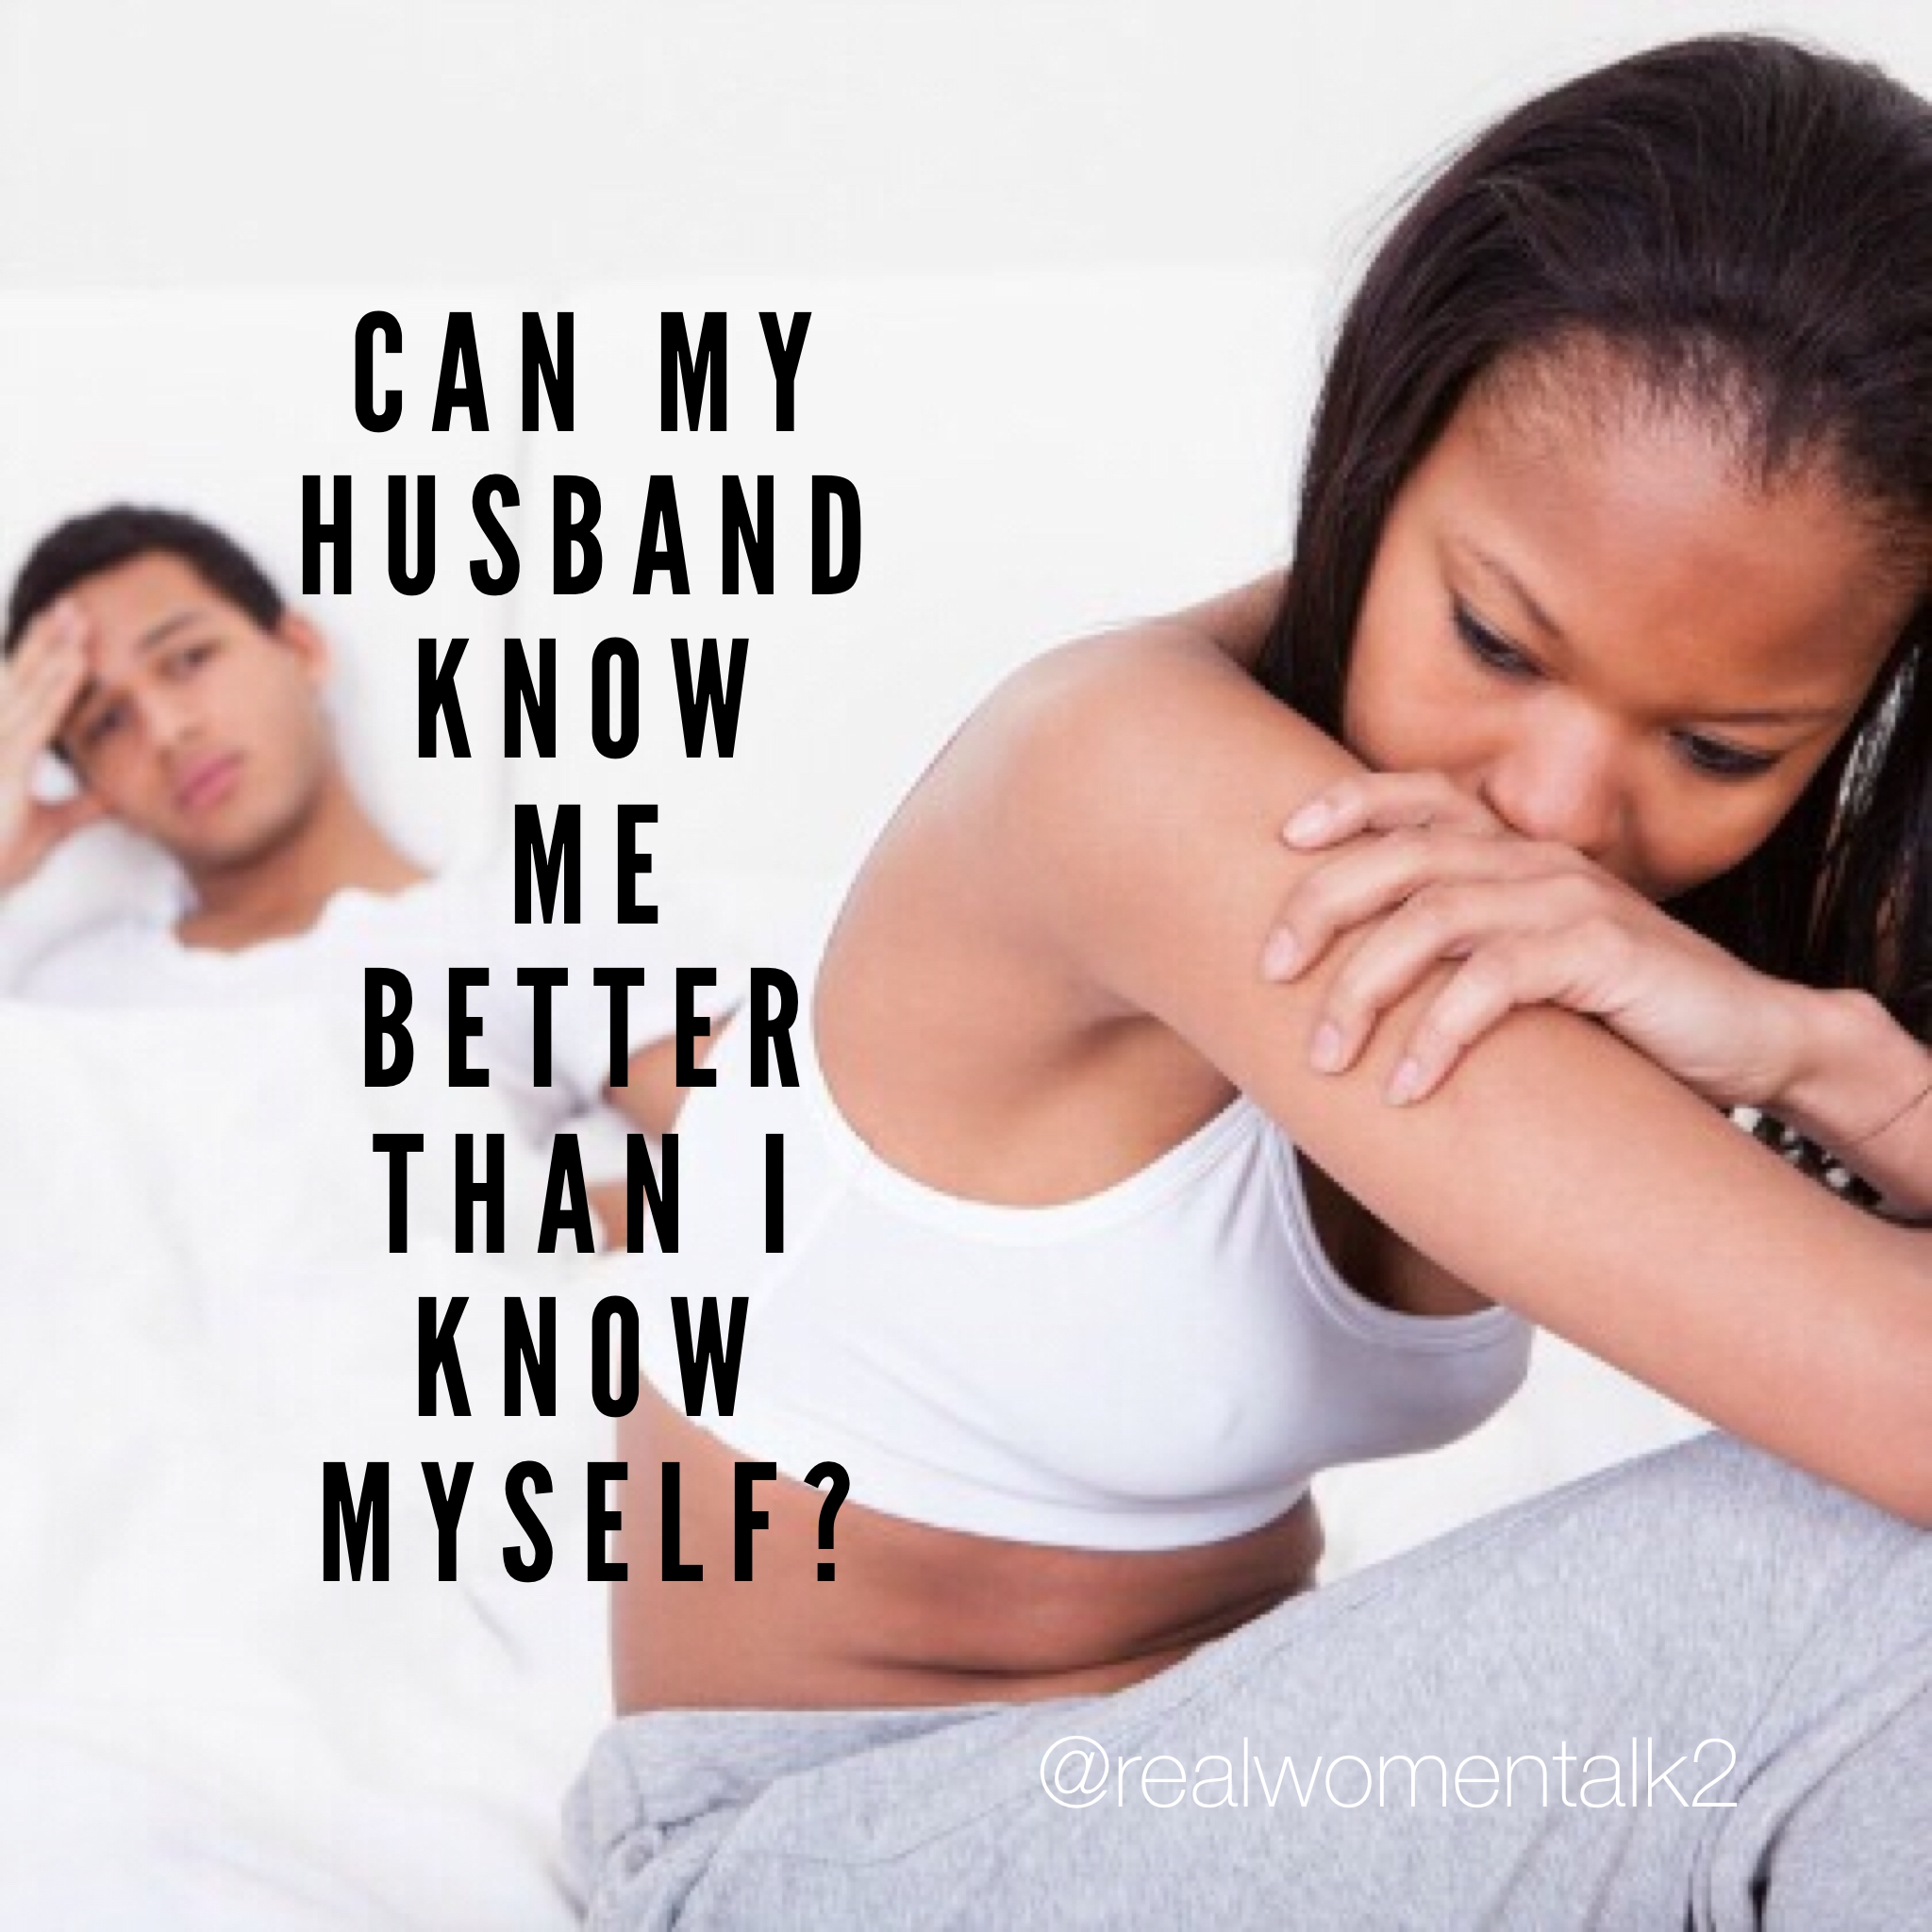 Can my husband know me better than I know myself?